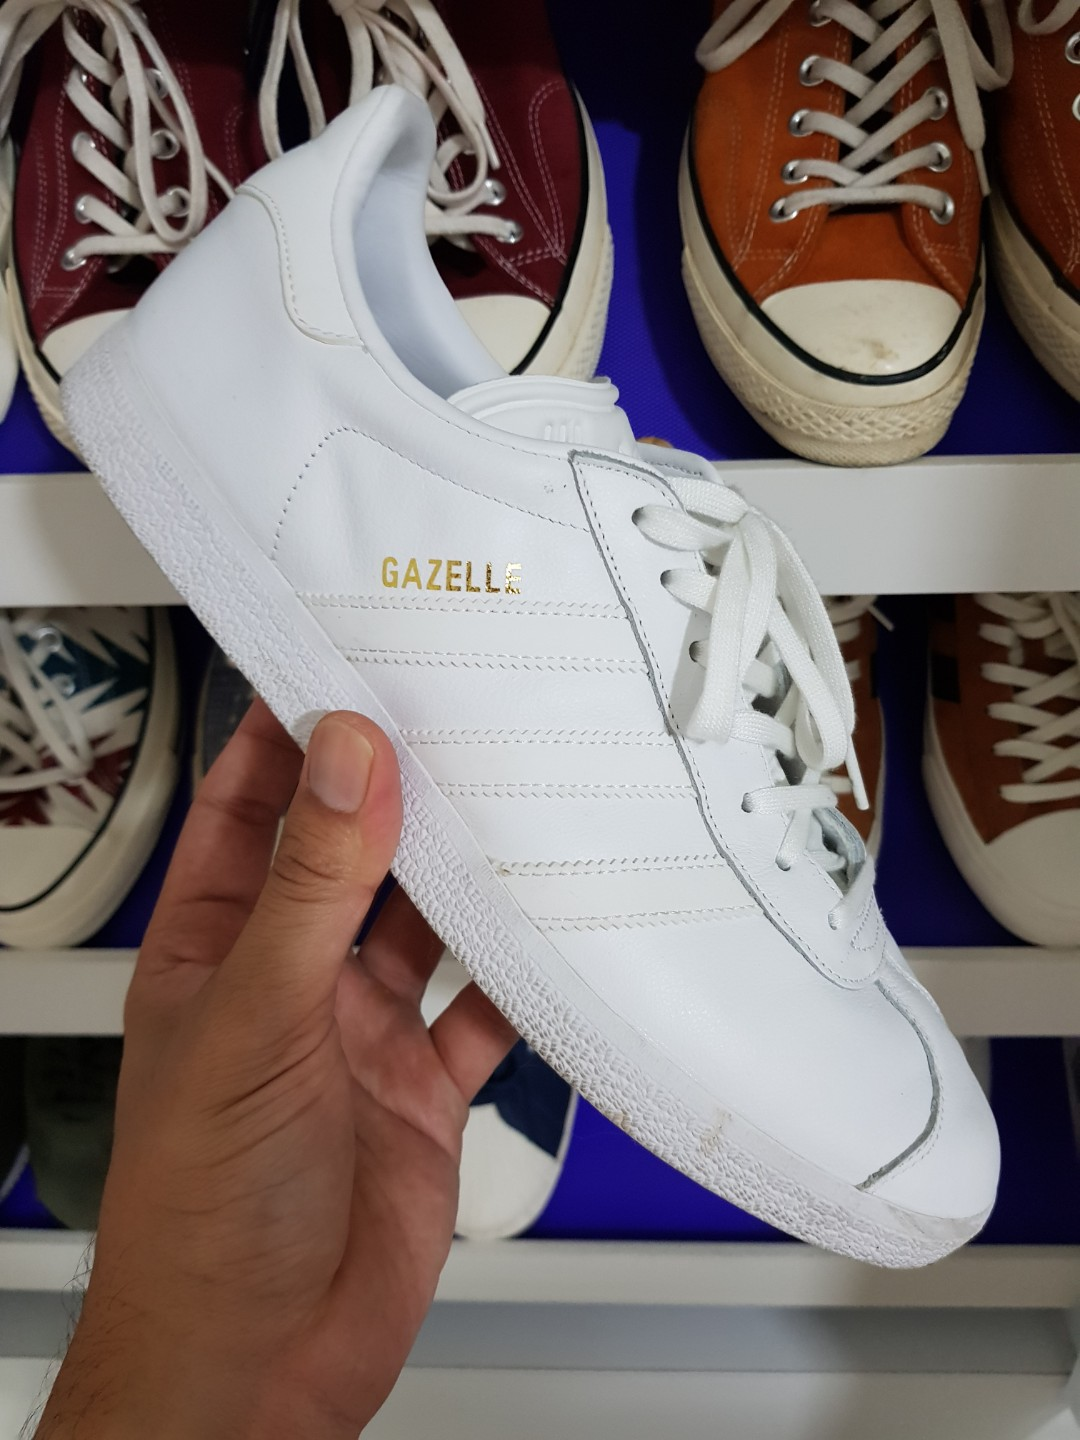 ADIDAS GAZELLE B41648 MEN/'S GENUINLY ORIGINAL OUTDOOR SHOES SNEAKERS